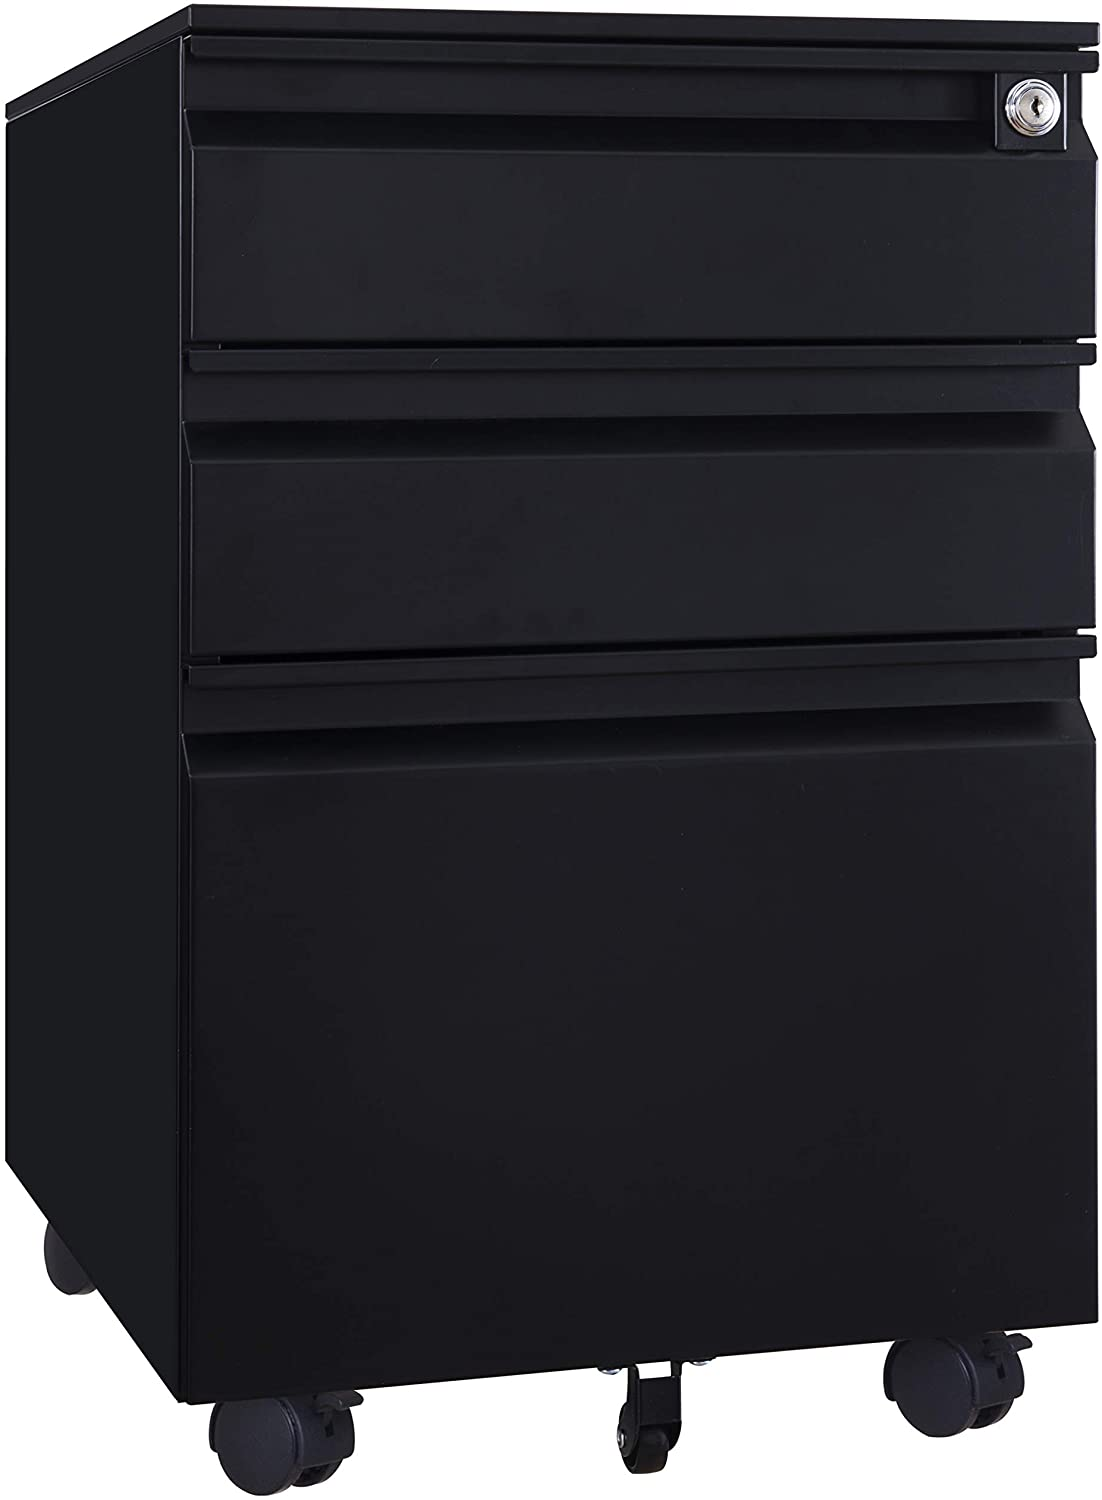 3 Drawer Mobile File Cabinet with Lock, Metal Filing Cabinet Legal/Letter Size, Fully Assembled Except Wheels (Black)